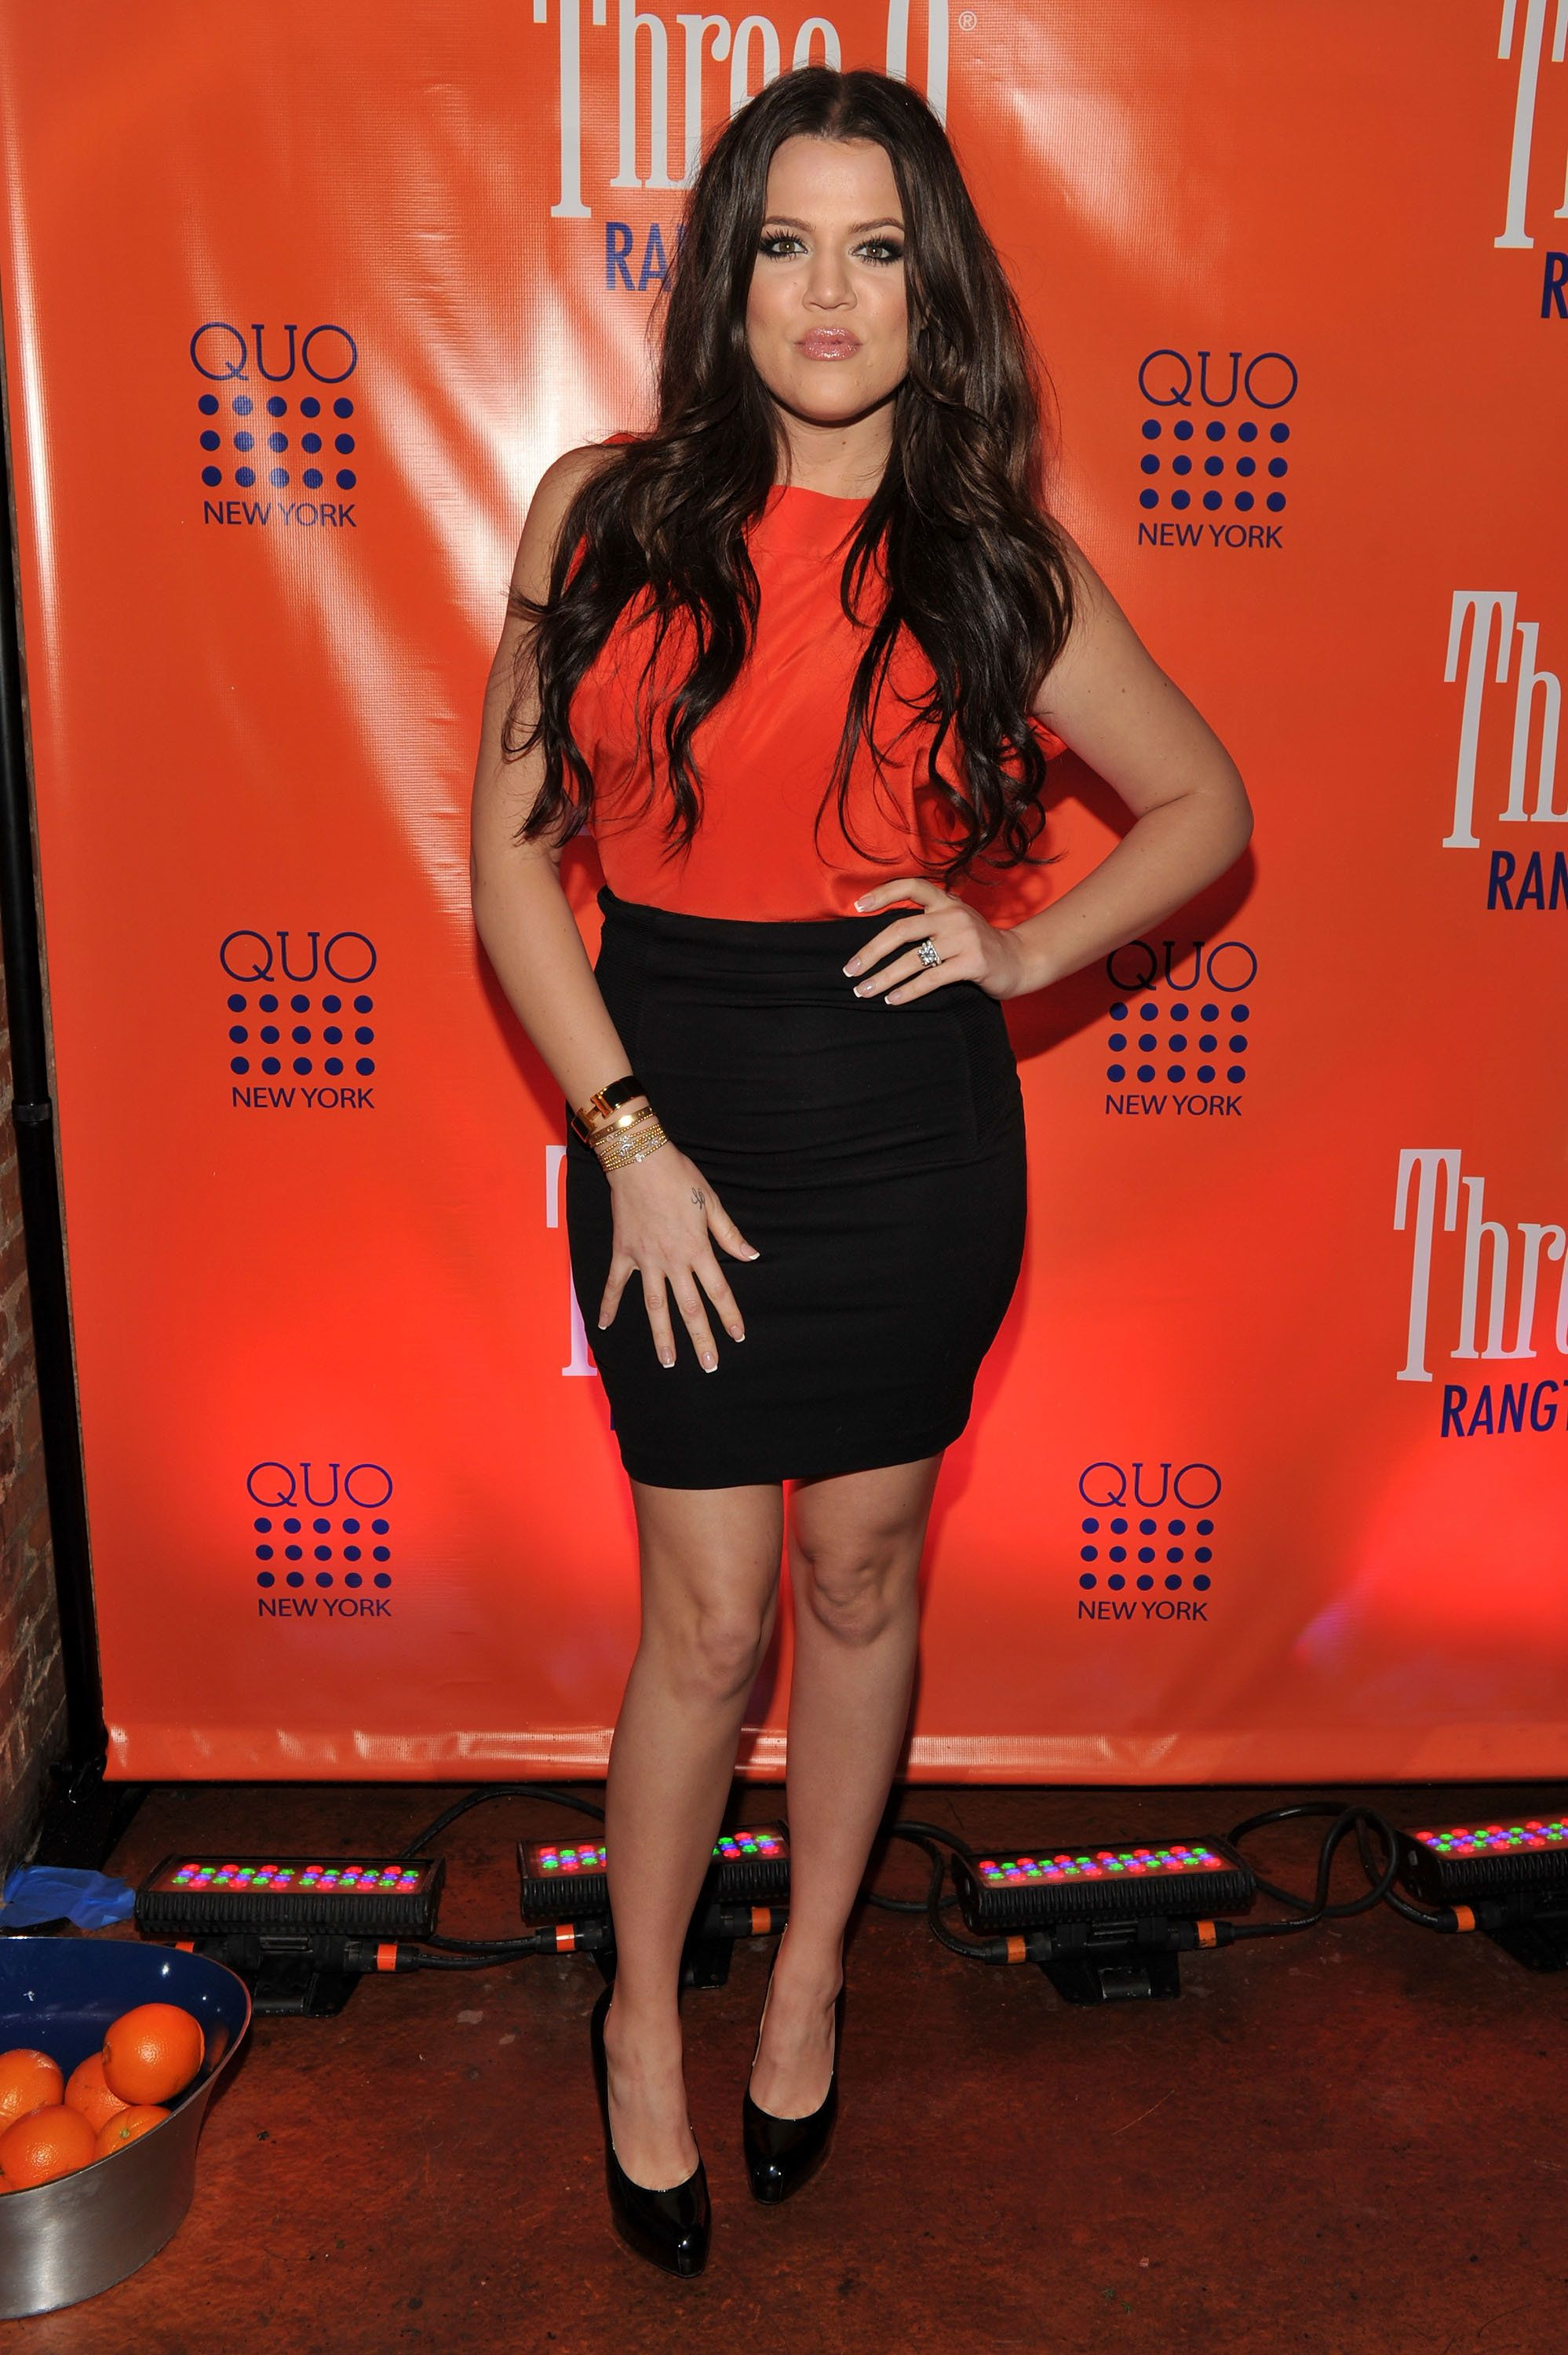 At Three-O Vodka's Rangtang launch party at Quo Nightclub in New York City.